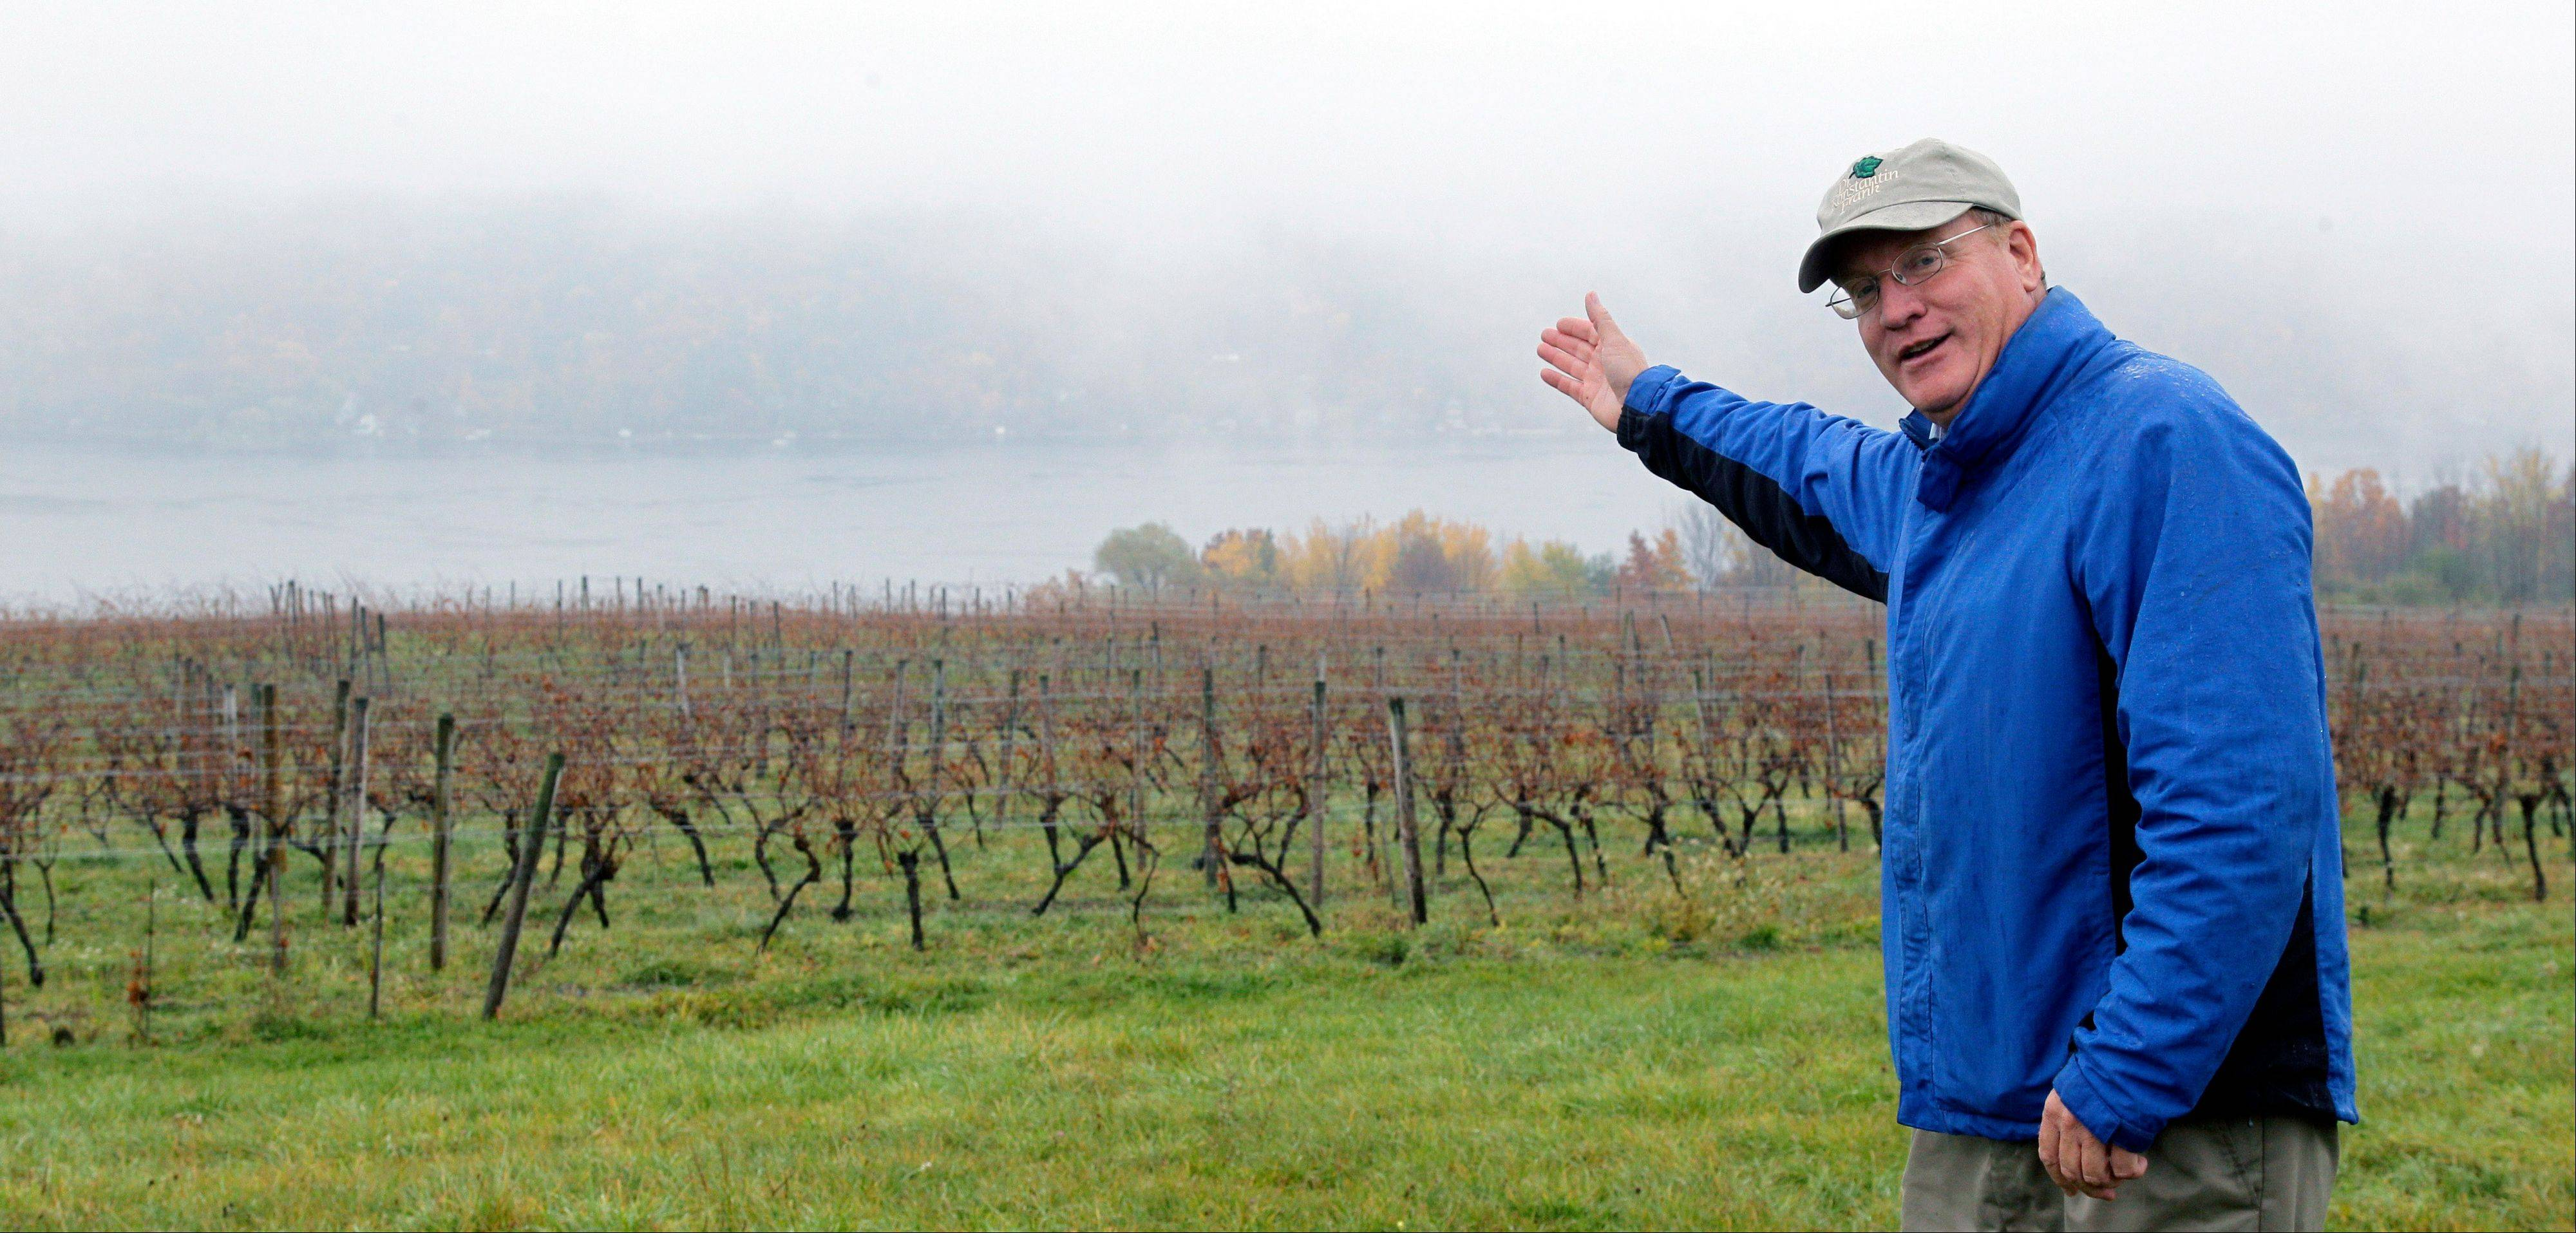 Fred Frank poses Tuesday for a photo in his vineyard at Dr. Konstantin Frank Vinifera Wine Cellars in Hammondsport, N.Y. Frank, grandson of Dr. Konstantin Frank, worries the region�s carefully tended reputation is in danger if tourists who make the long trip up from the New York City area and elsewhere have to deal with traffic created by gas drilling.